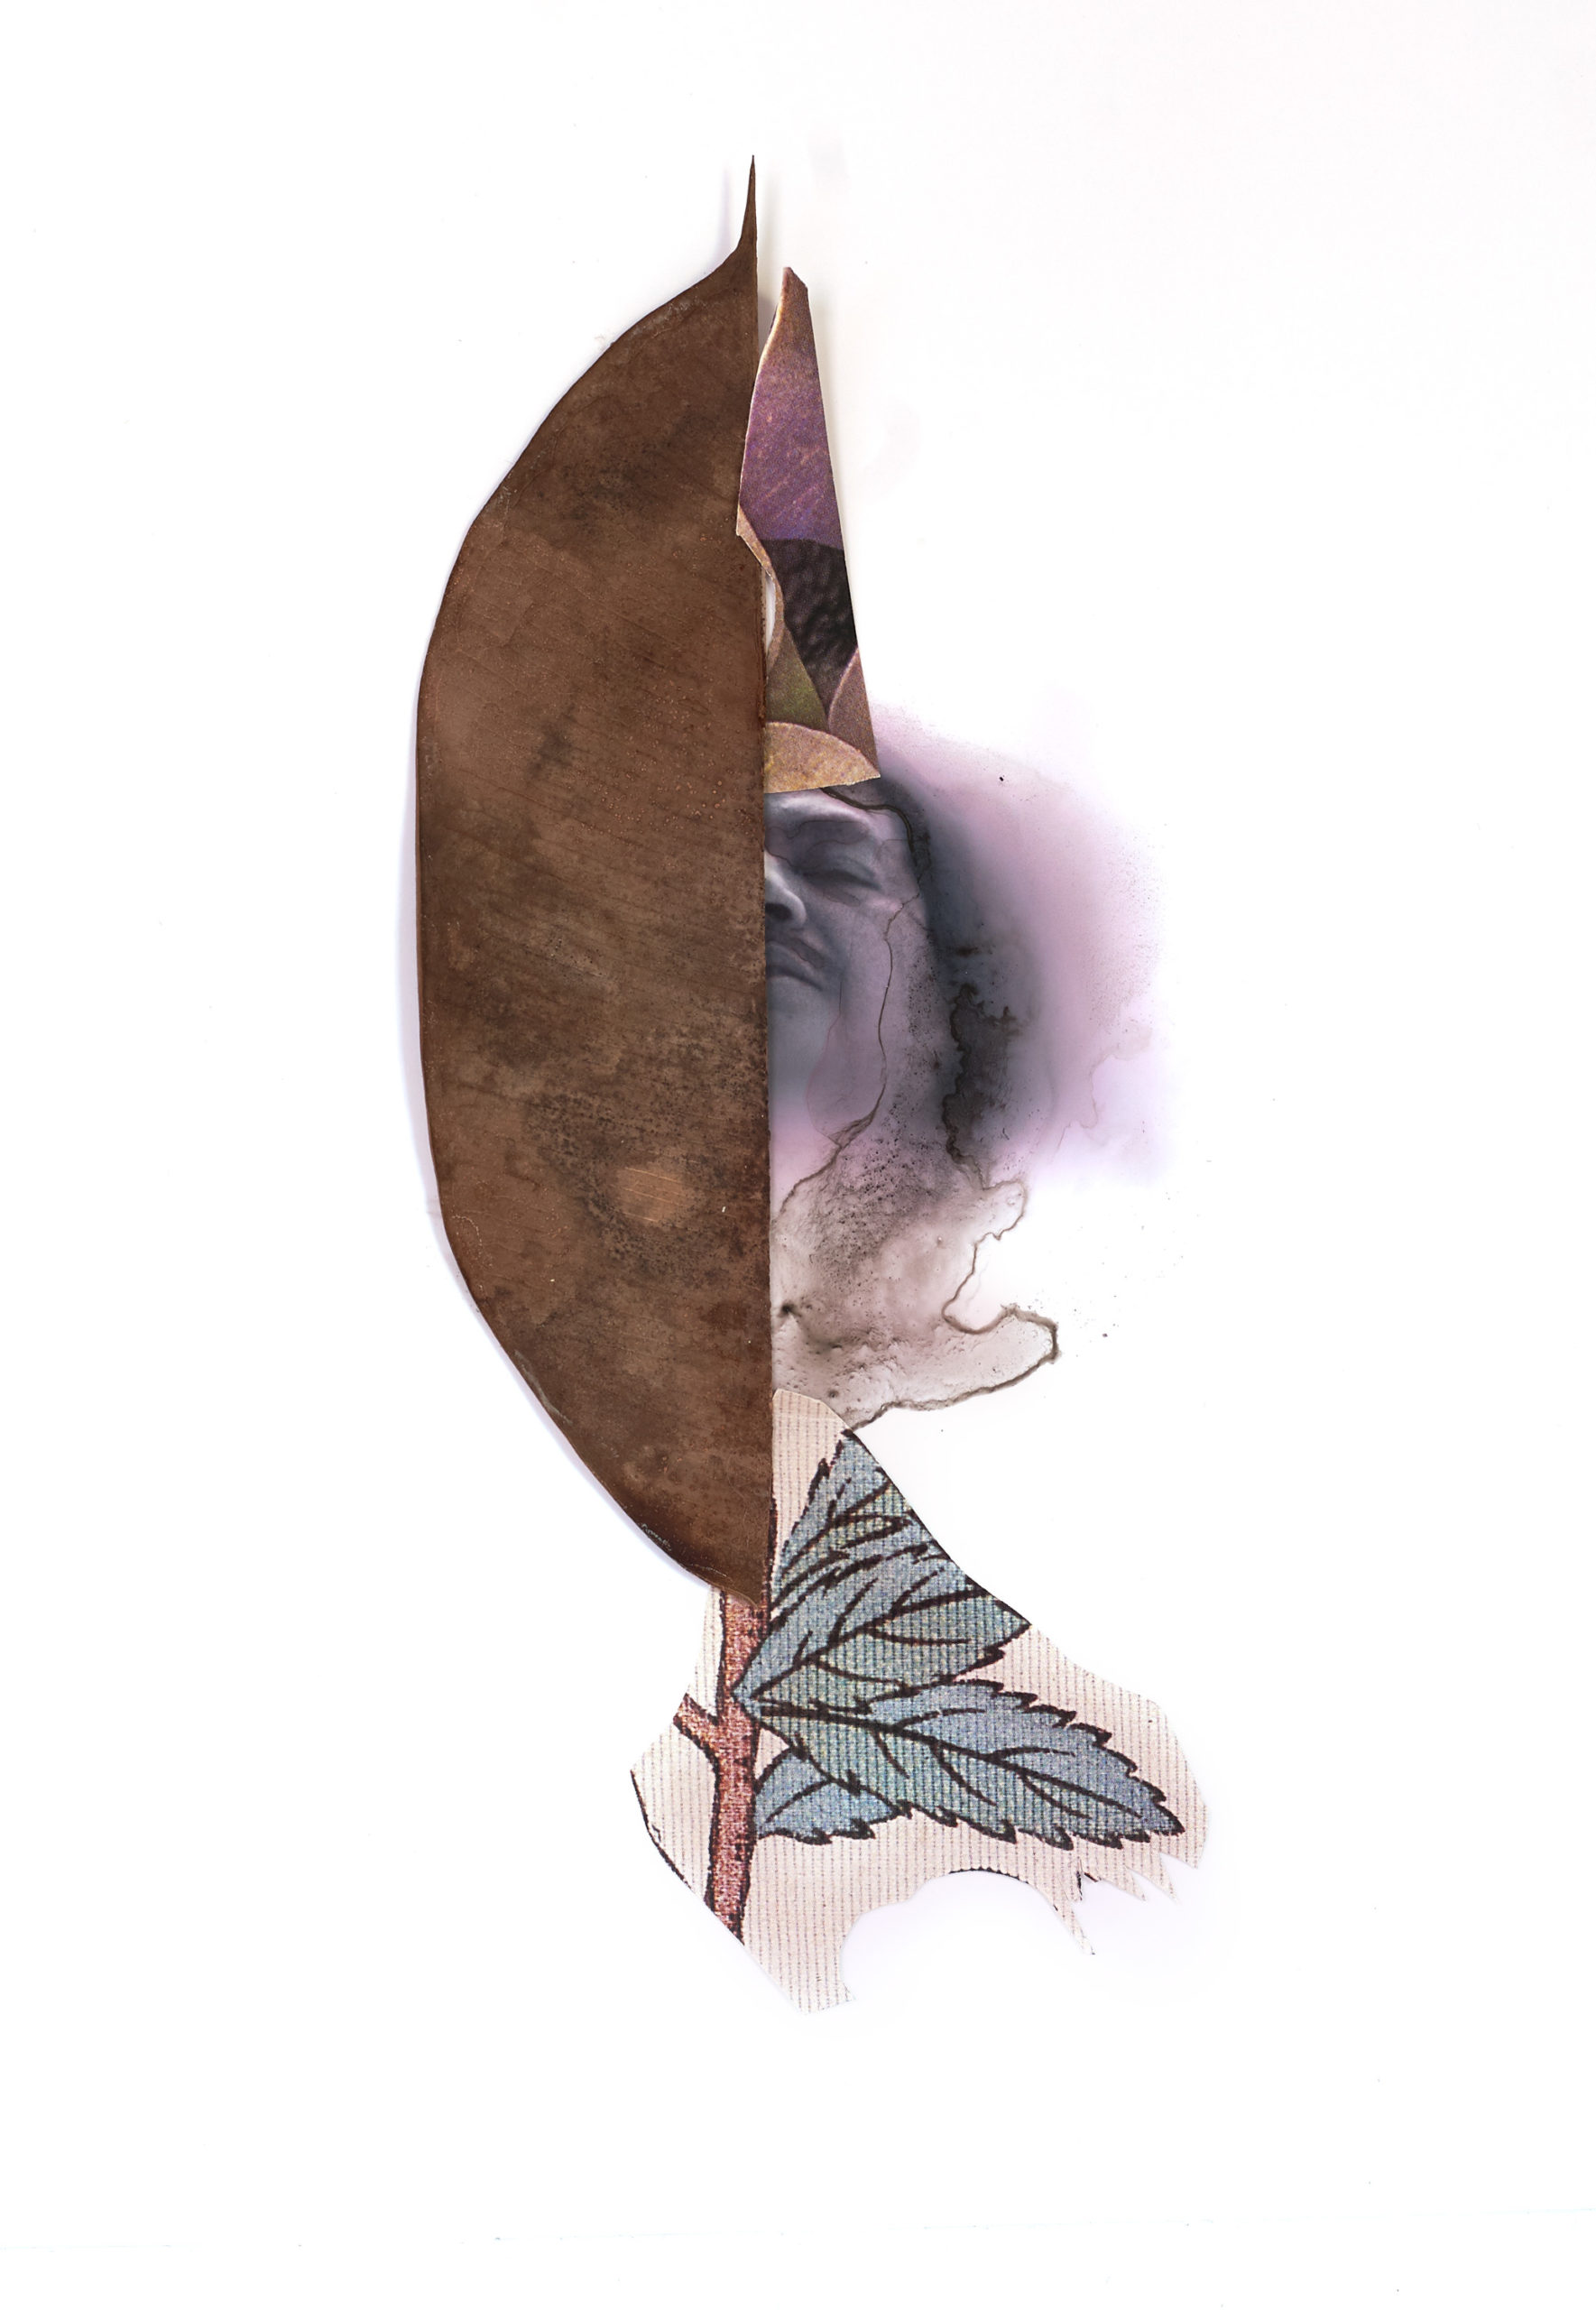 Half of a leaf with a face, drawing of a leaf, and other media next to it.